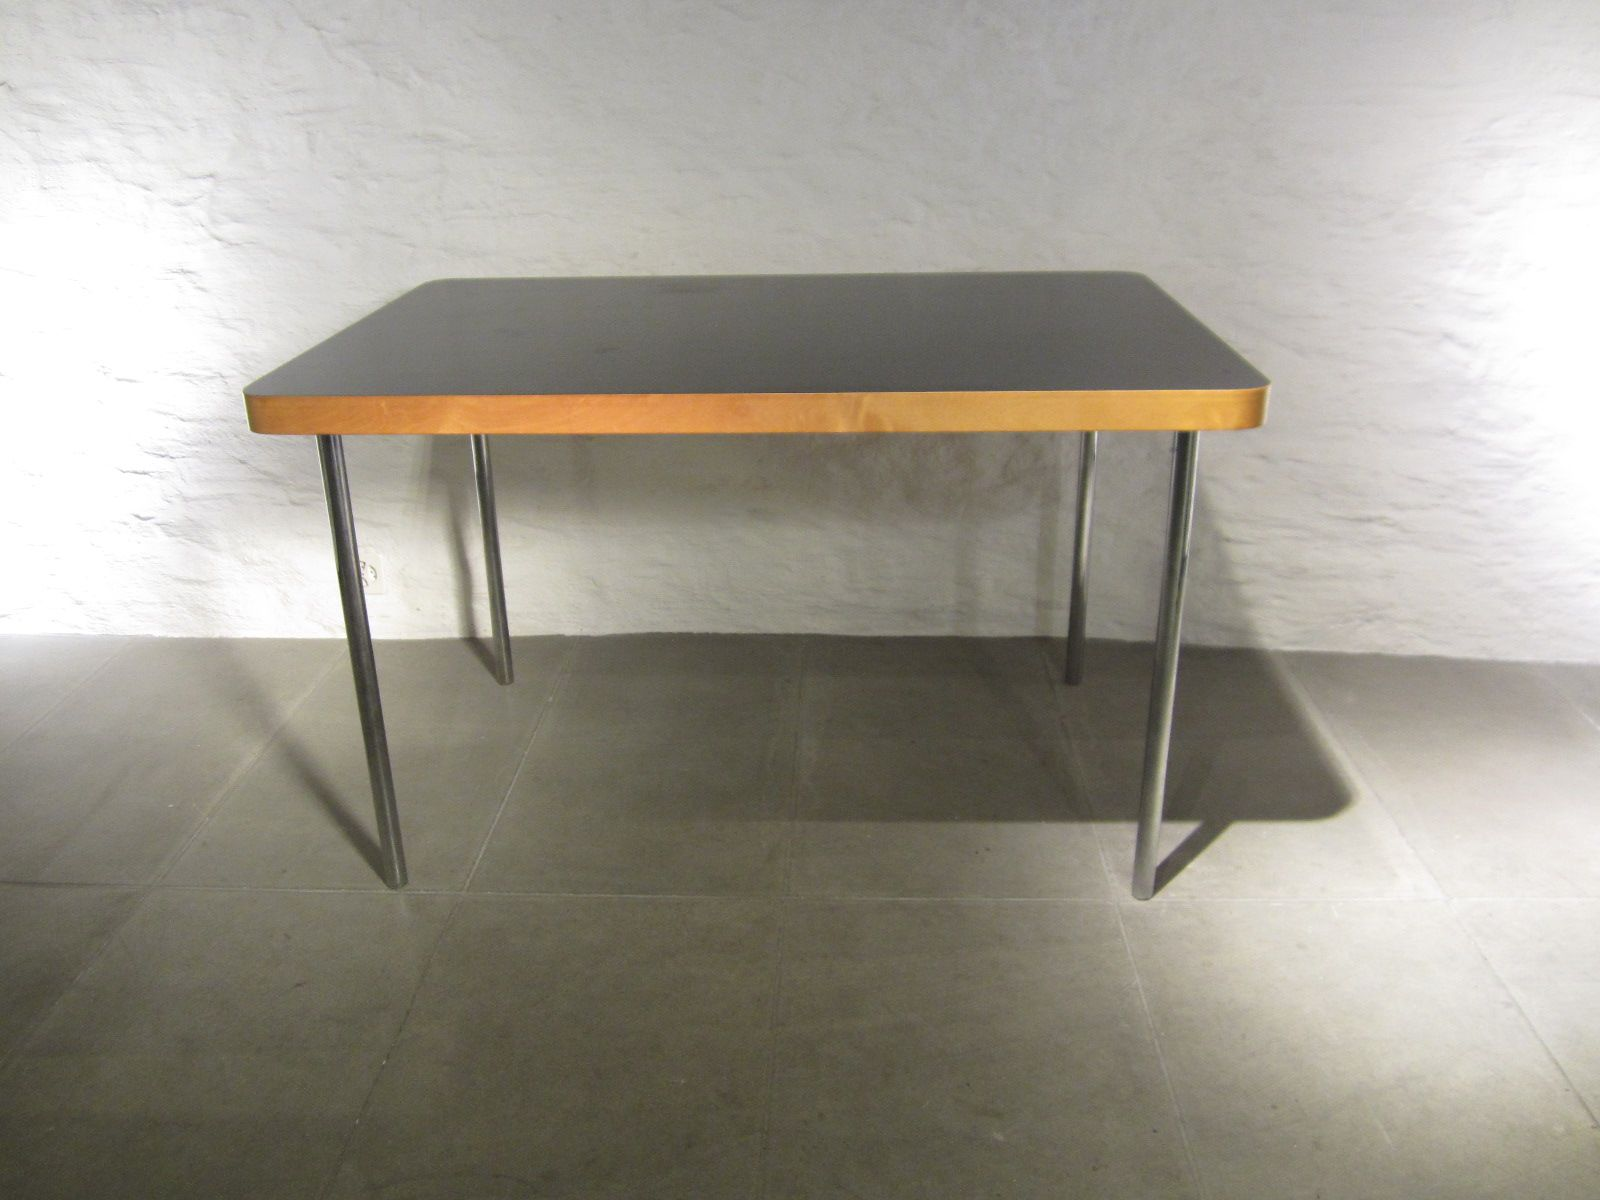 Small Vintage Dining Table By Marcel Breuer For Embru Wohnbedarf, 1940s